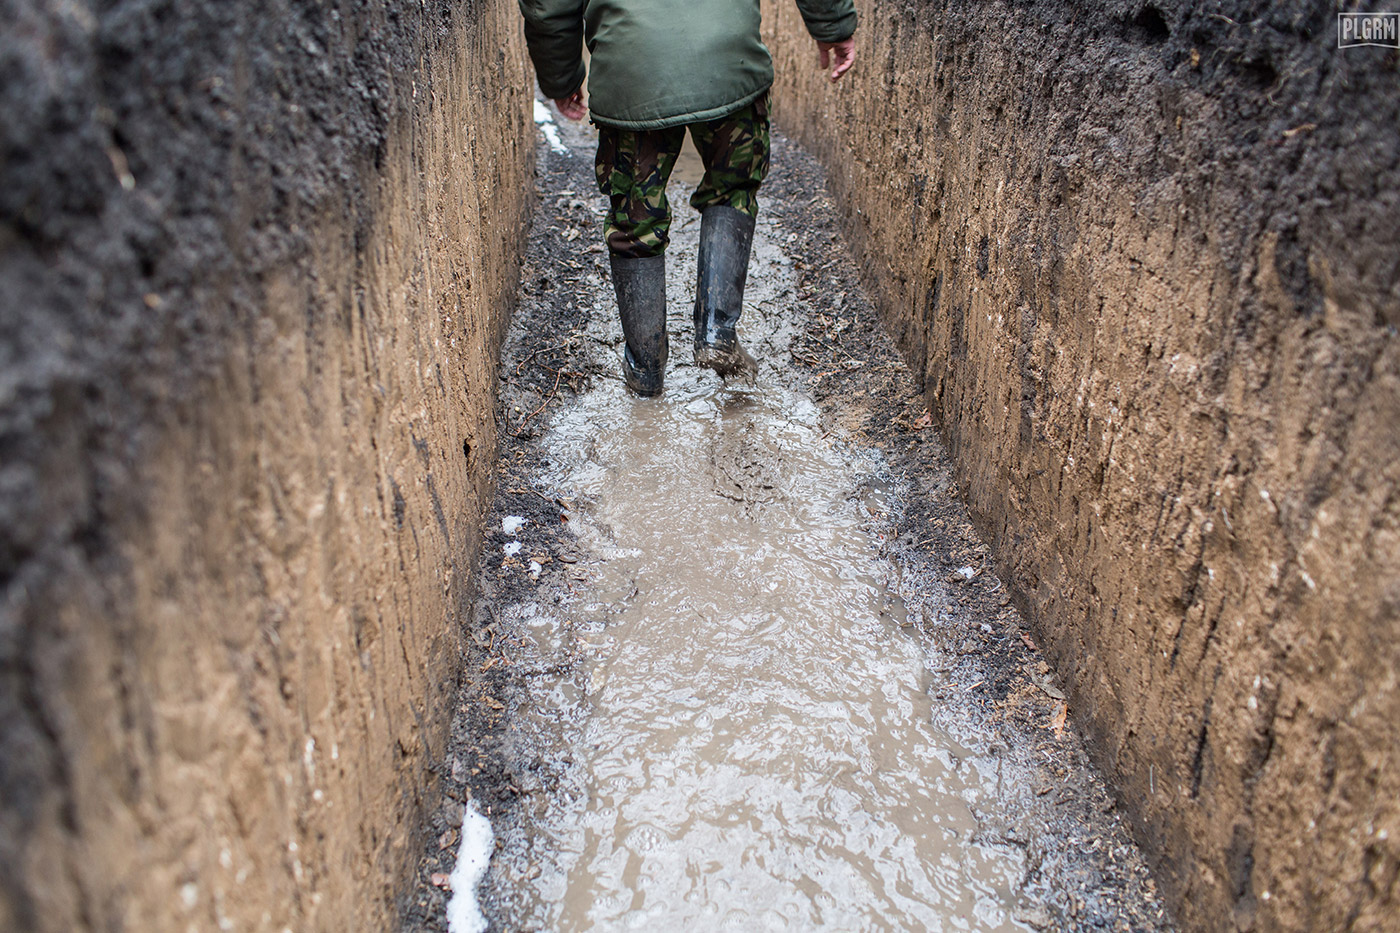 A Ukrainian soldier slogs through muddy, wet trenches as we walk along Ukrainian defensive positions on the front lines in Donetsk.